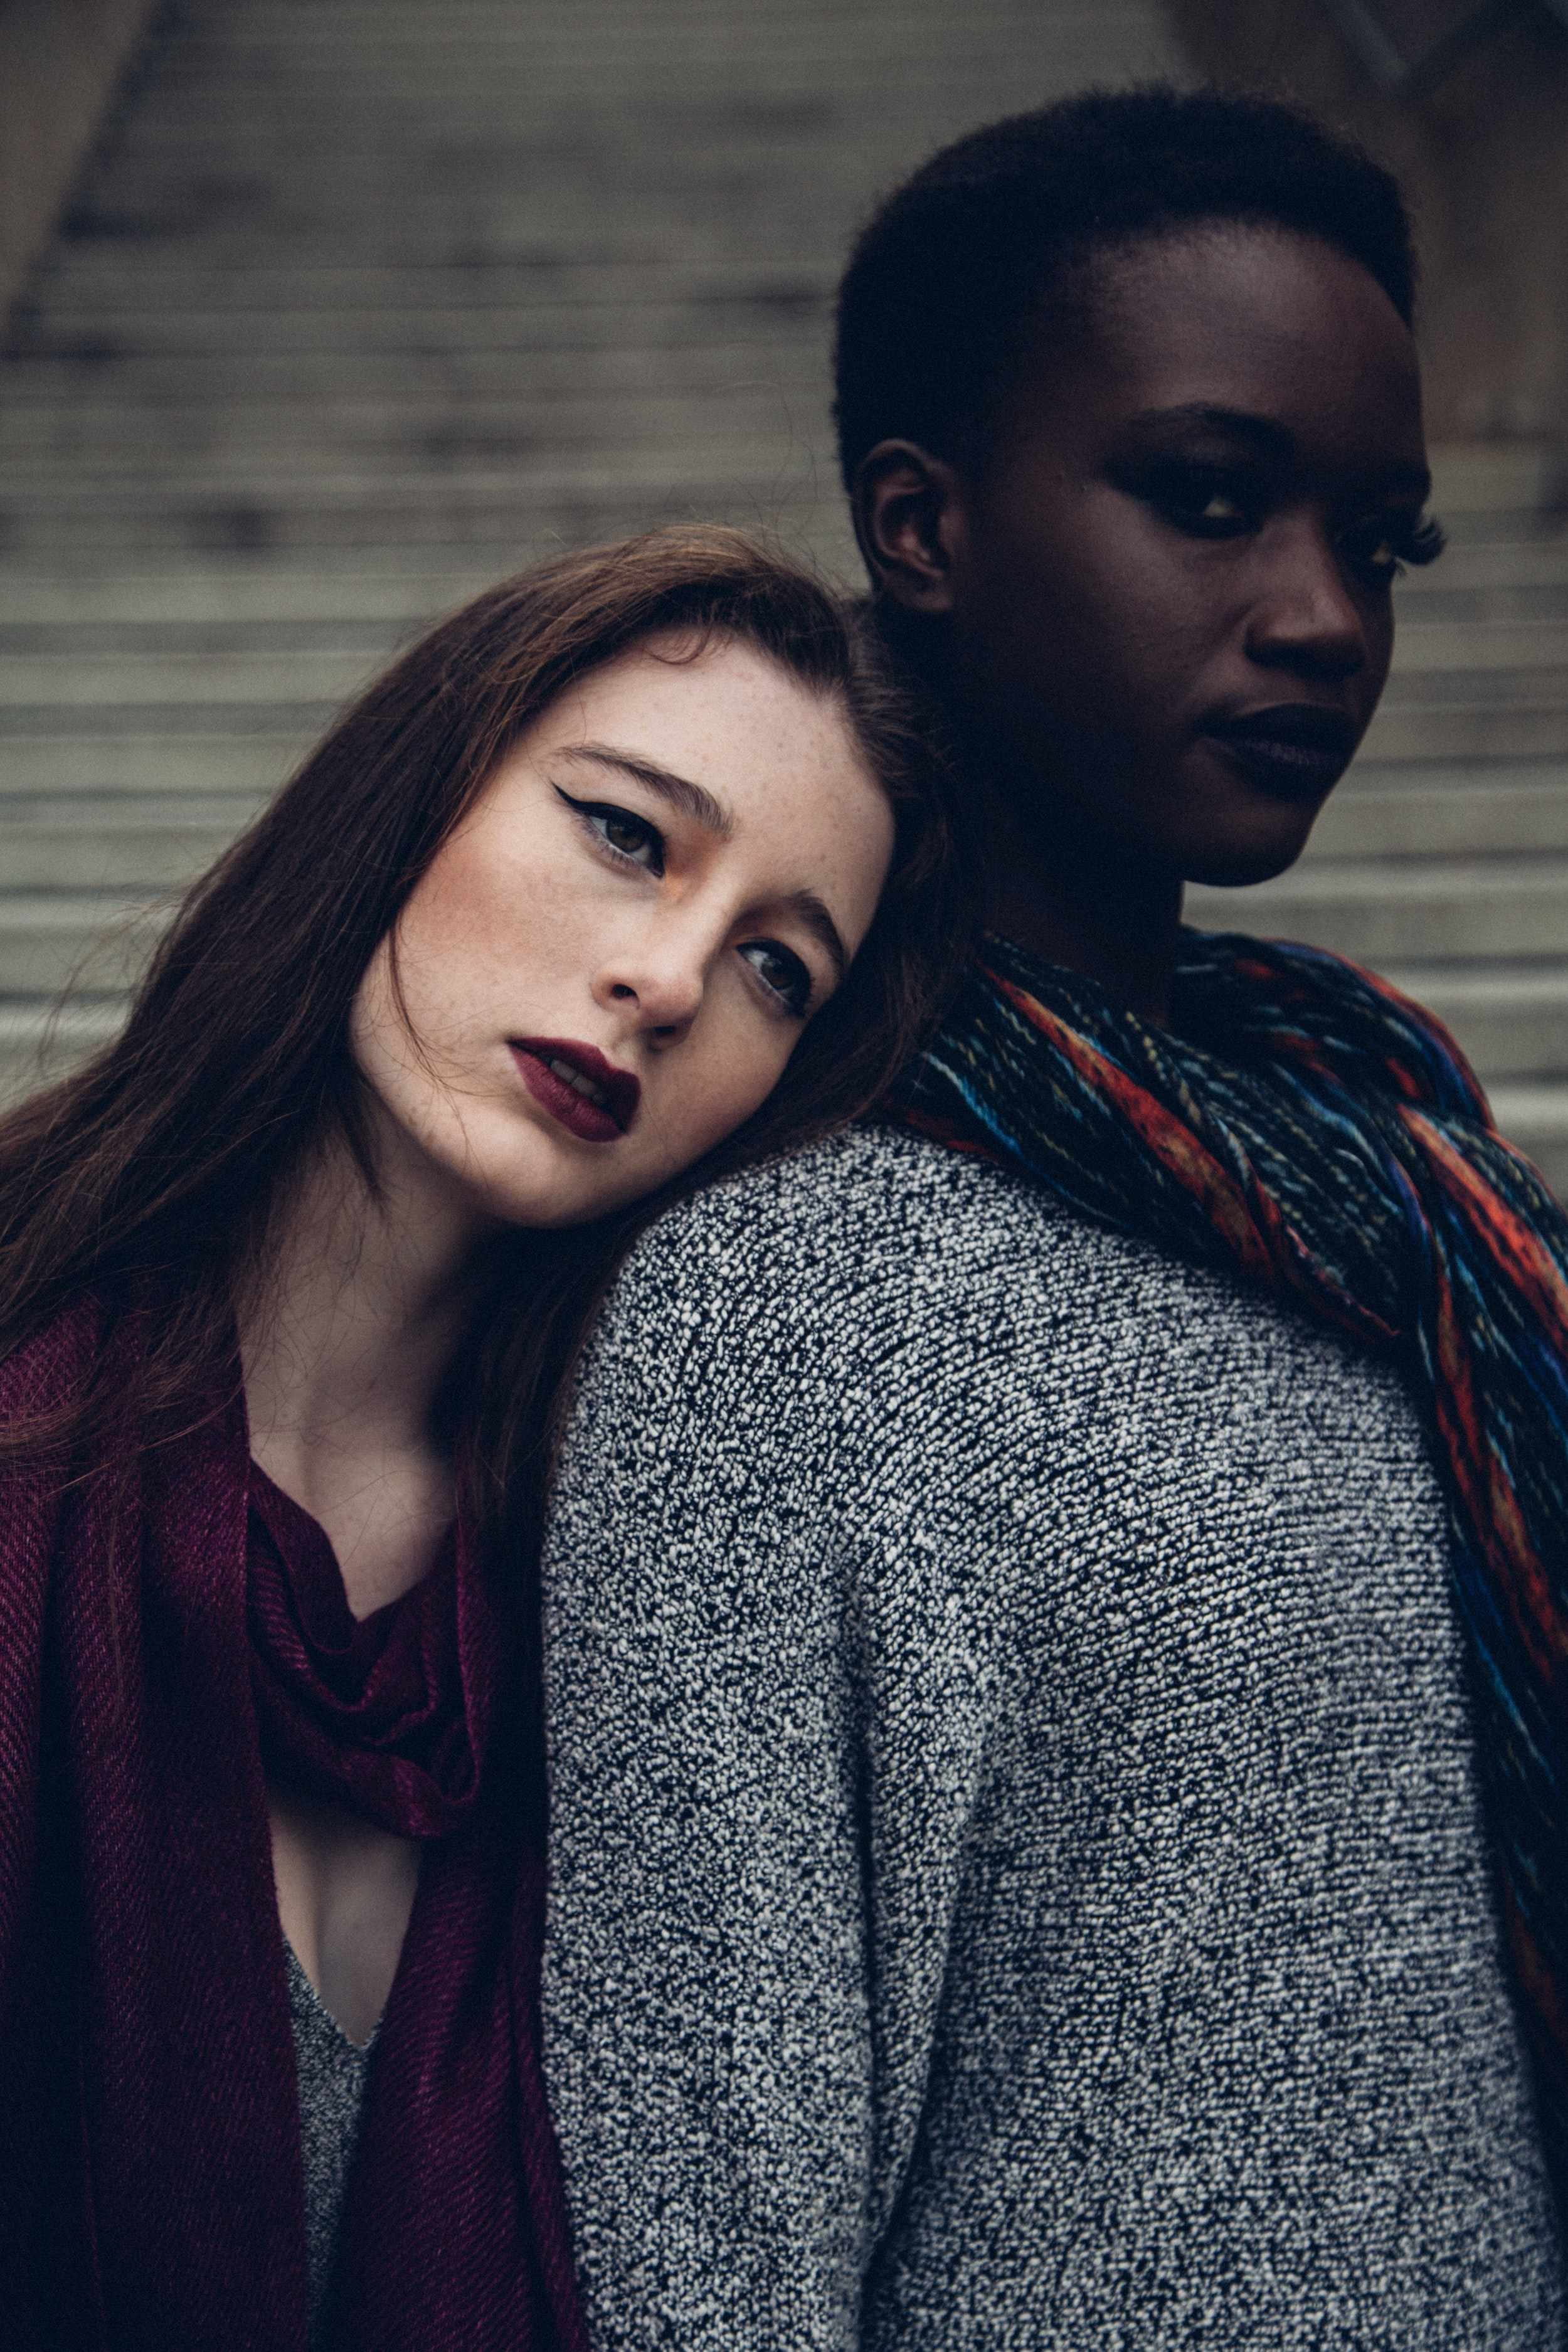 woman leaning her head to another woman during daytime